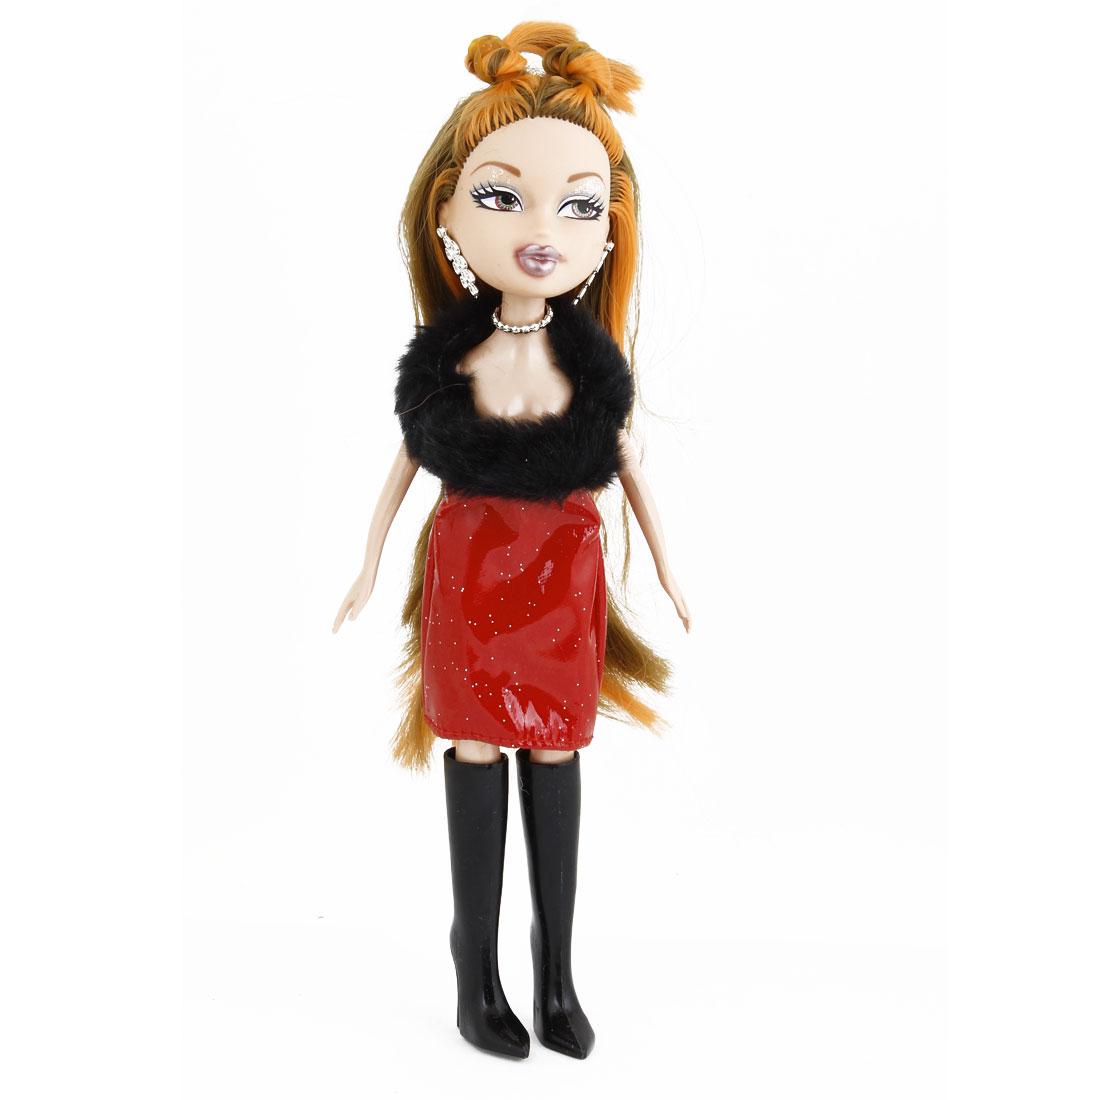 Red Black Dress Decor Long Hair Plastic Maid Doll Toy for Kid